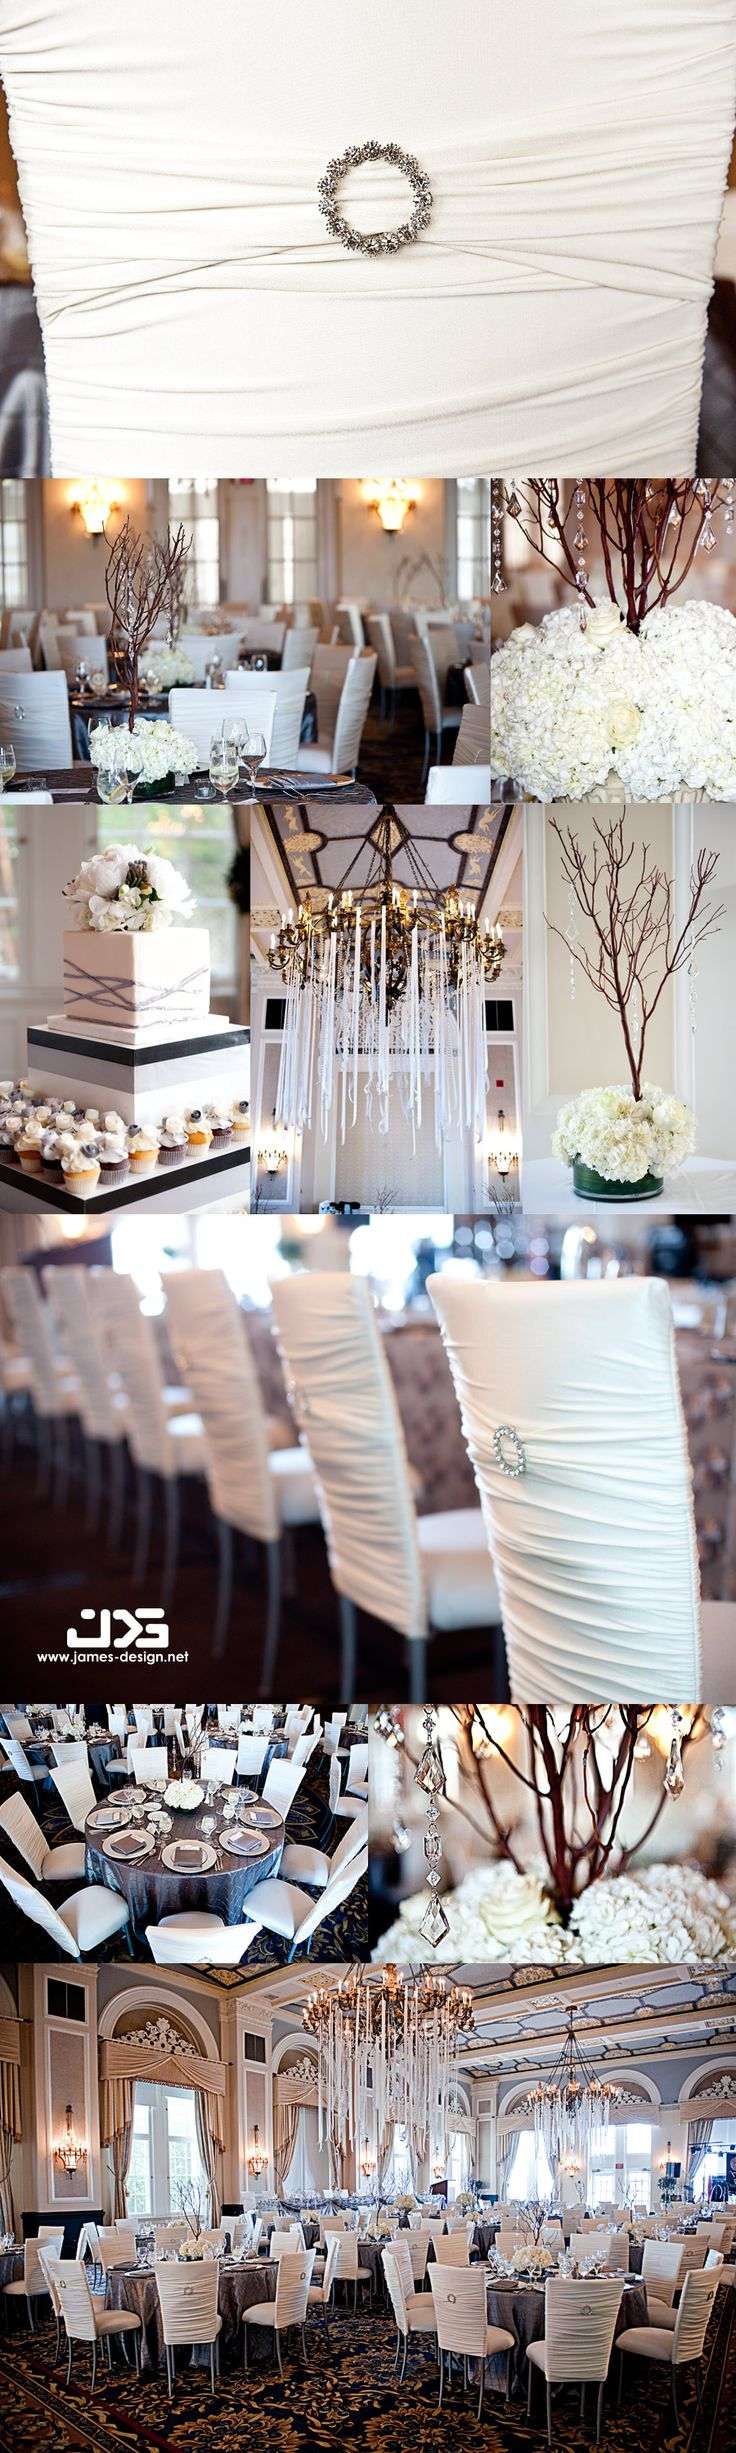 Photography -JDS  Wedding coordination and design- Get wed  Rentals/decor- Elegant Touches